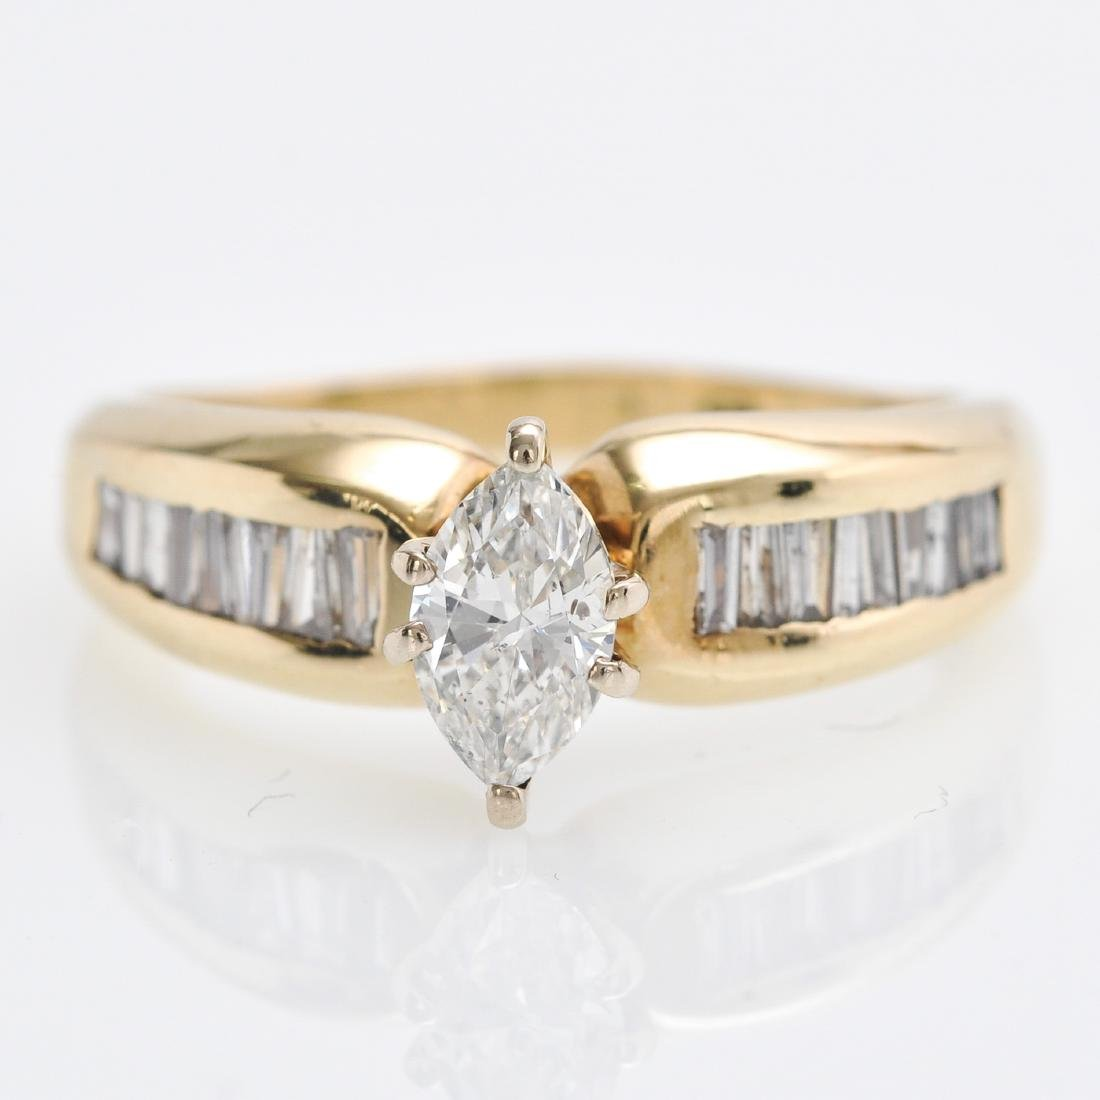 A 14KG Ladies Diamond Ring Approximately 0.86 CTW